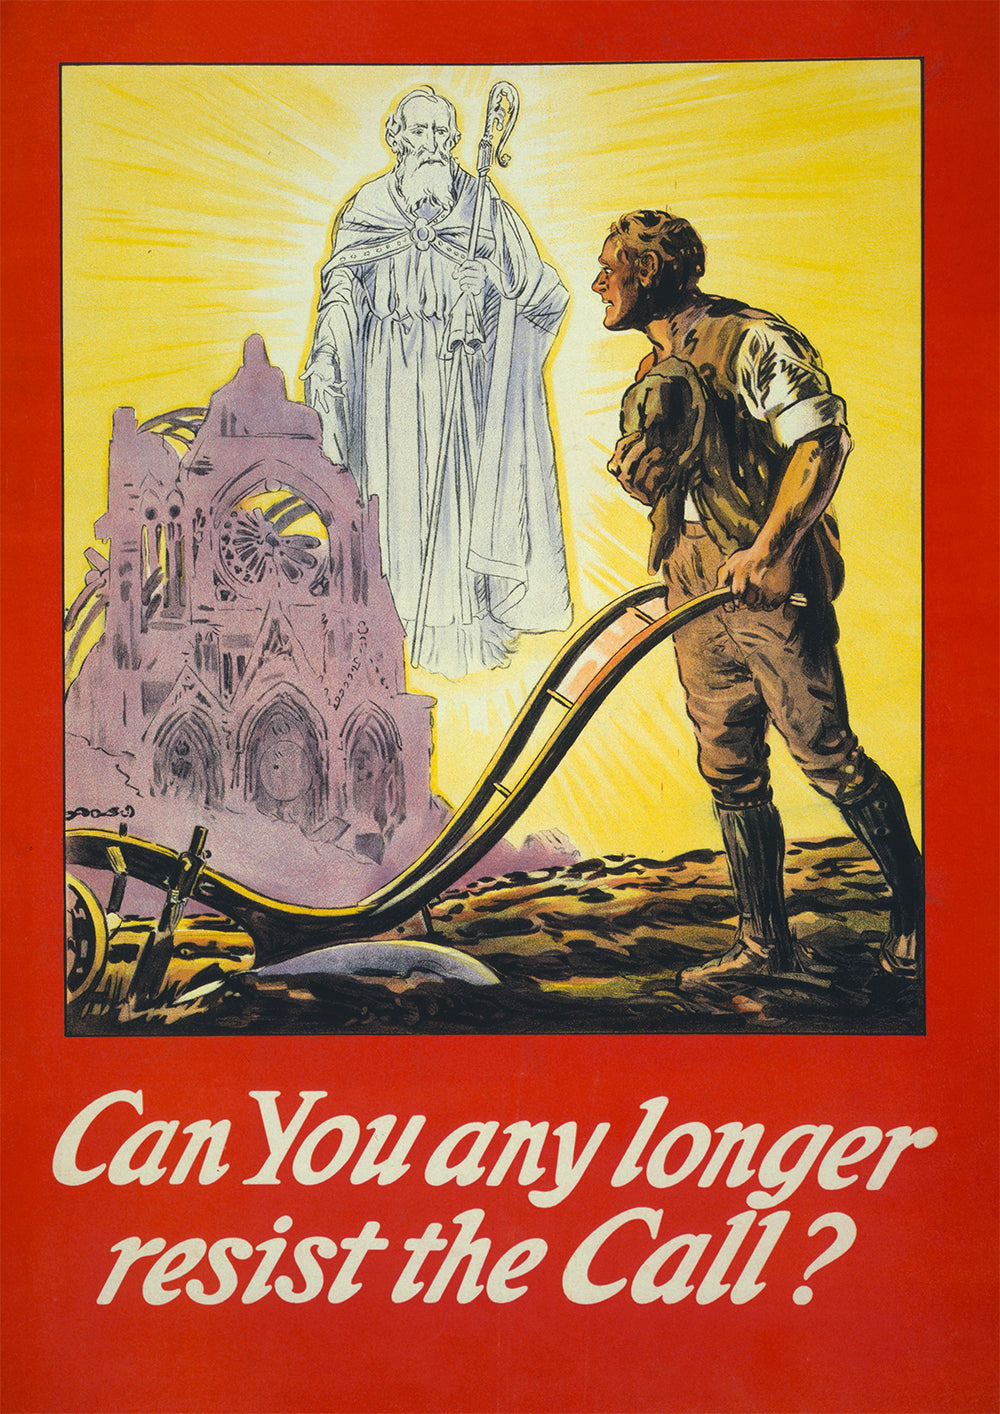 Can you any longer resist the call? – Irish World War One poster